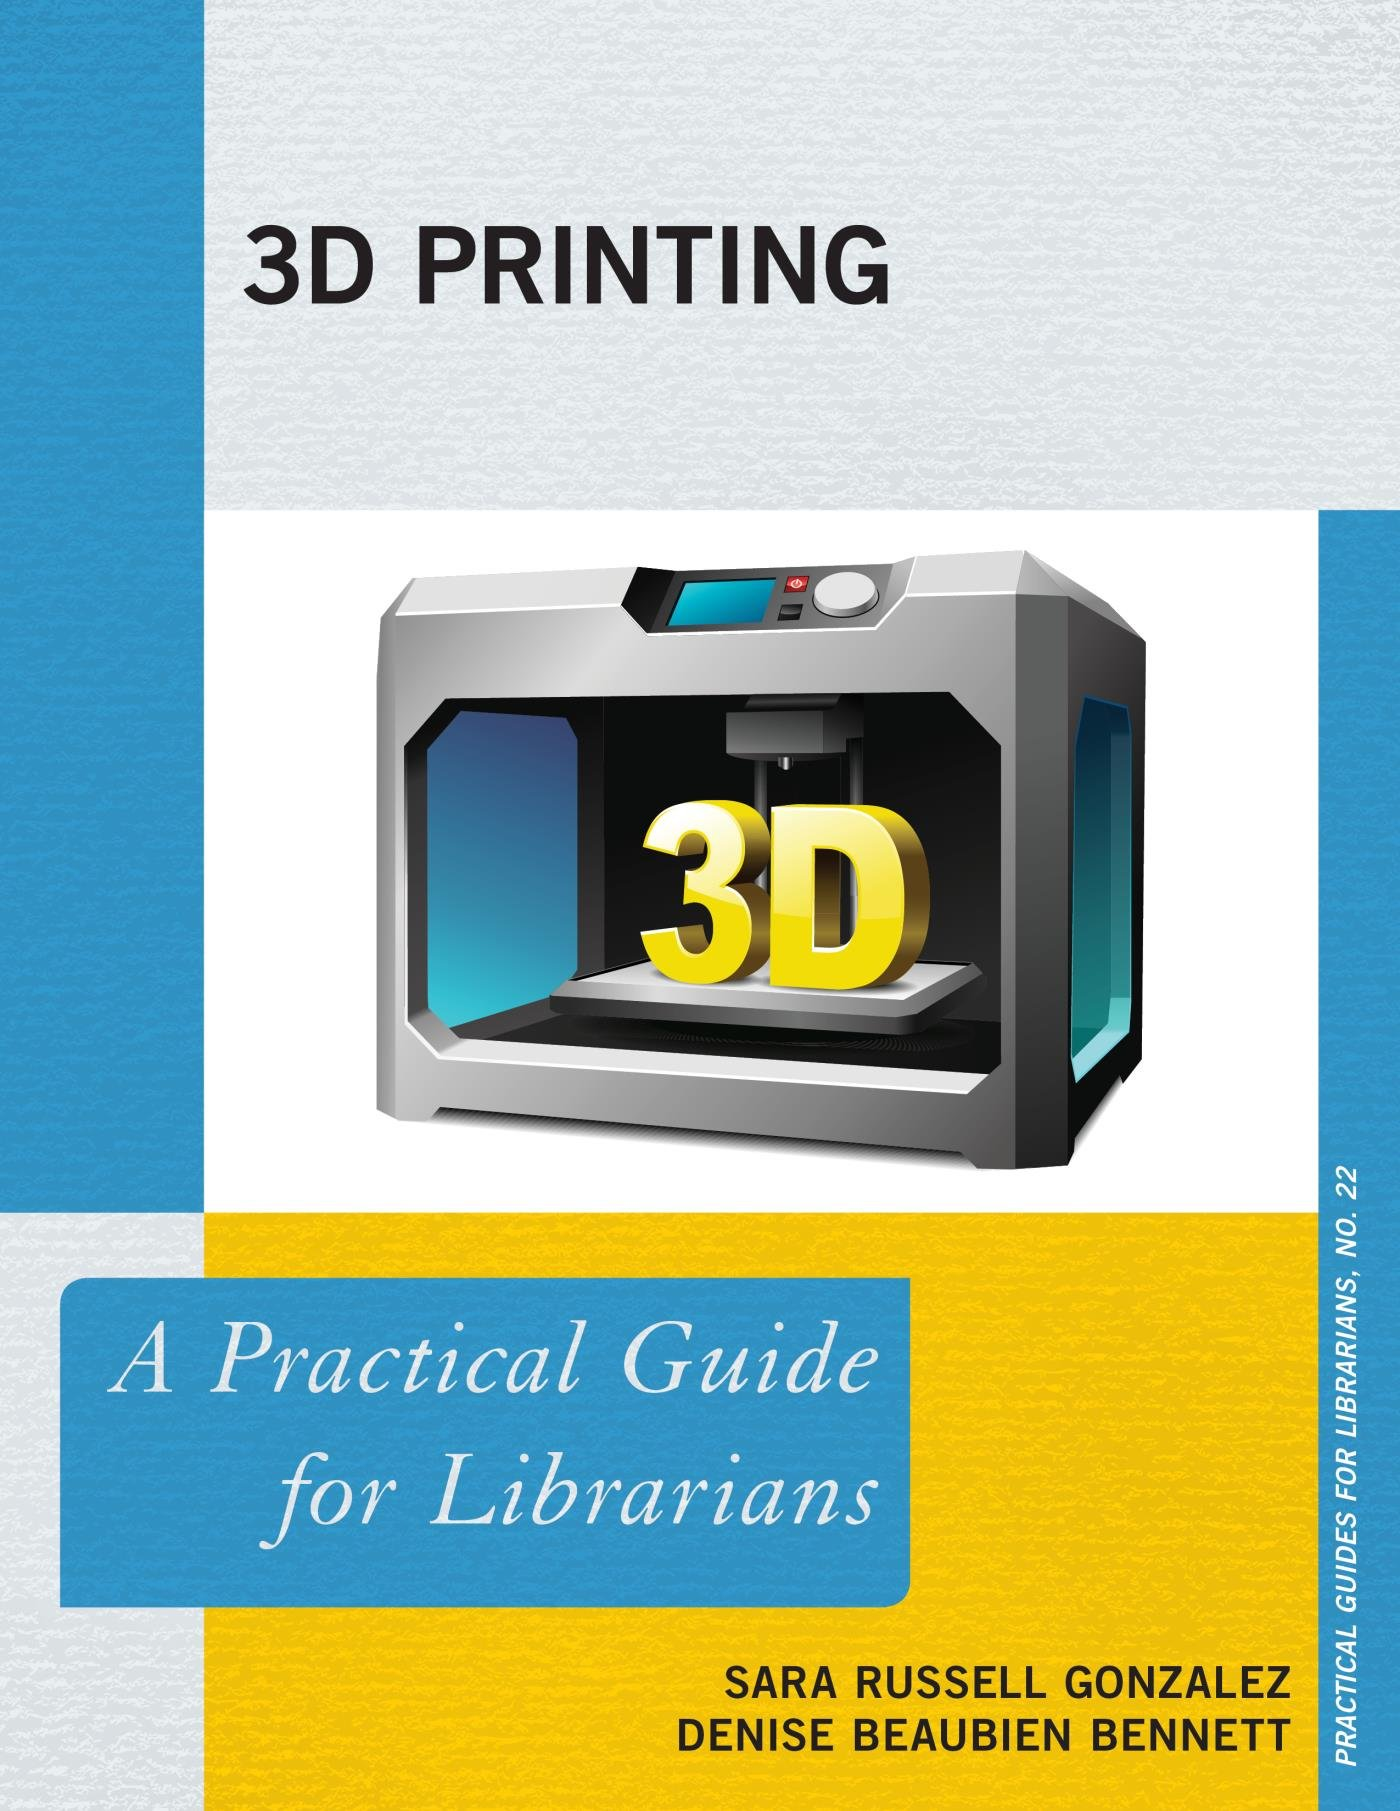 3D Printing: A Practical Guide For Librarians (Practical Guides For Librarians Book 22) (English Edition)